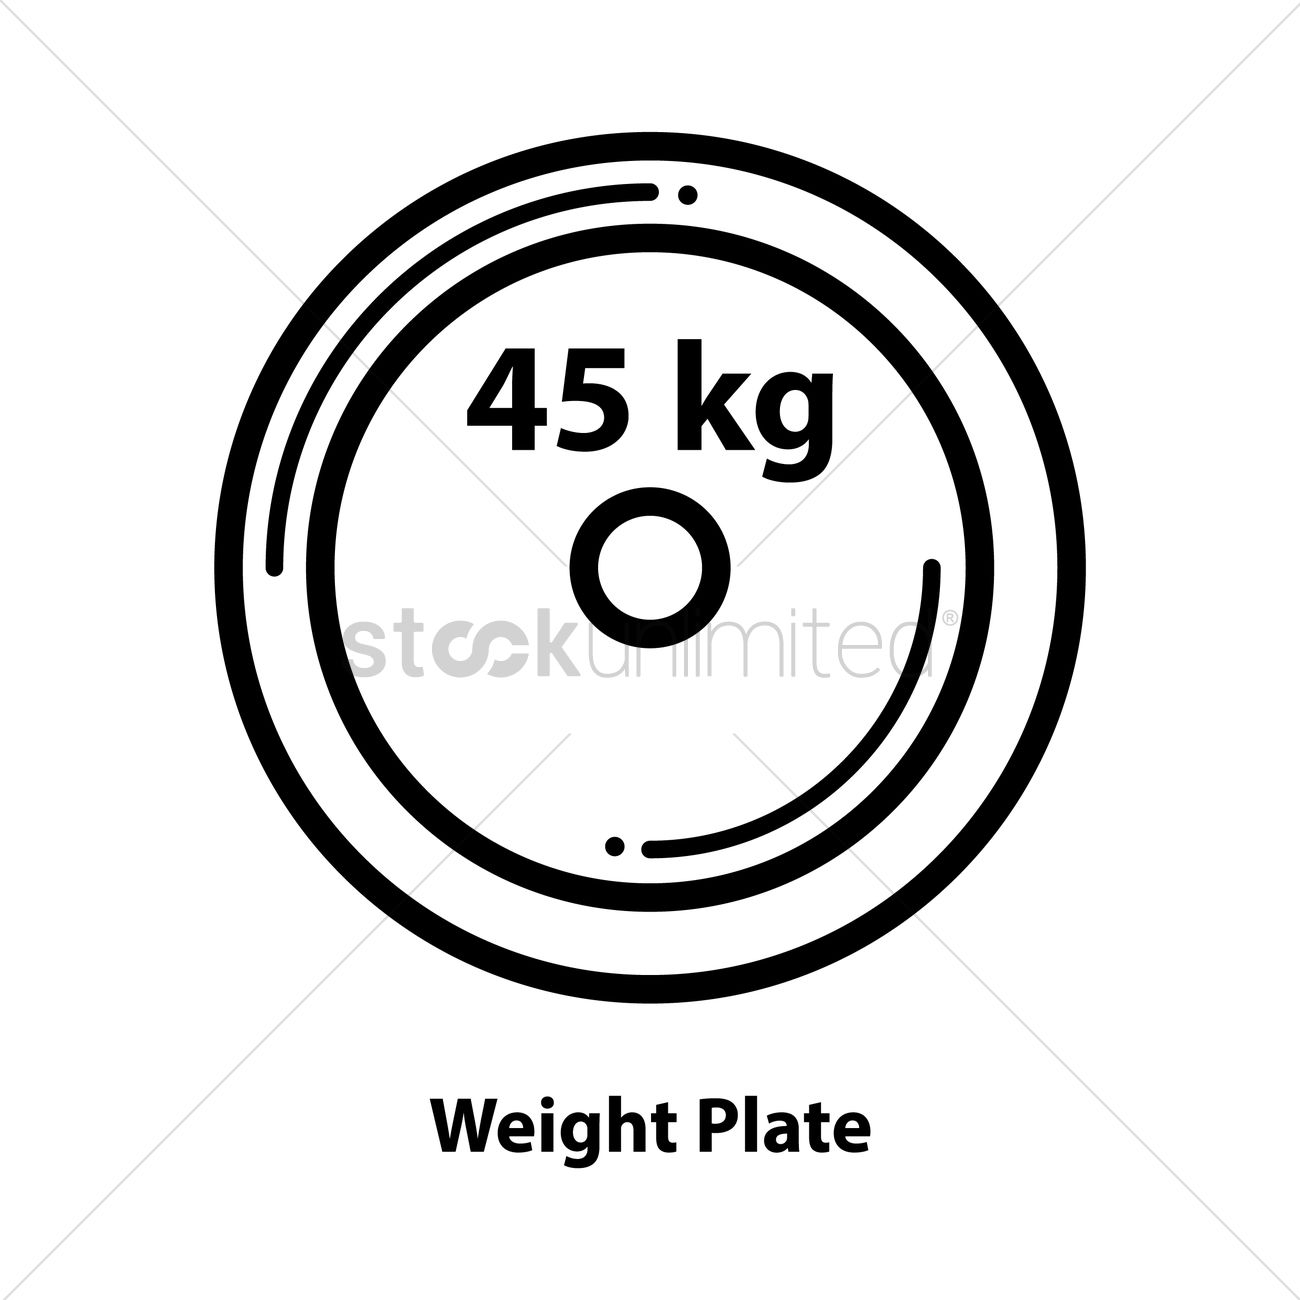 1300x1300 Weight Plate Vector Image